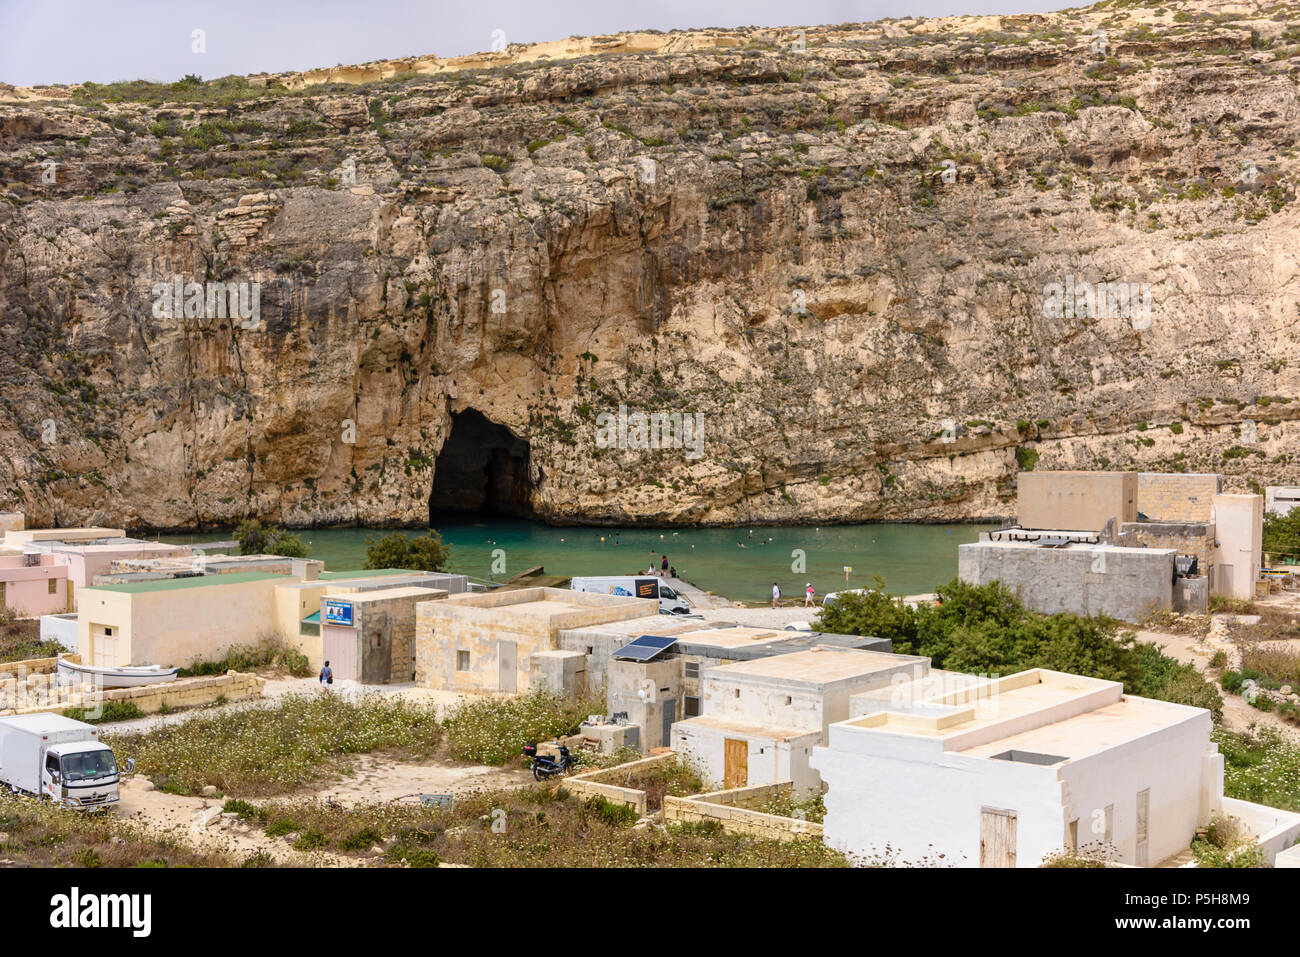 Dwerja, the inland sea, Gozo, Malta.  The cave joins with the Mediterranean sea on the other side of the cliff. Stock Photo